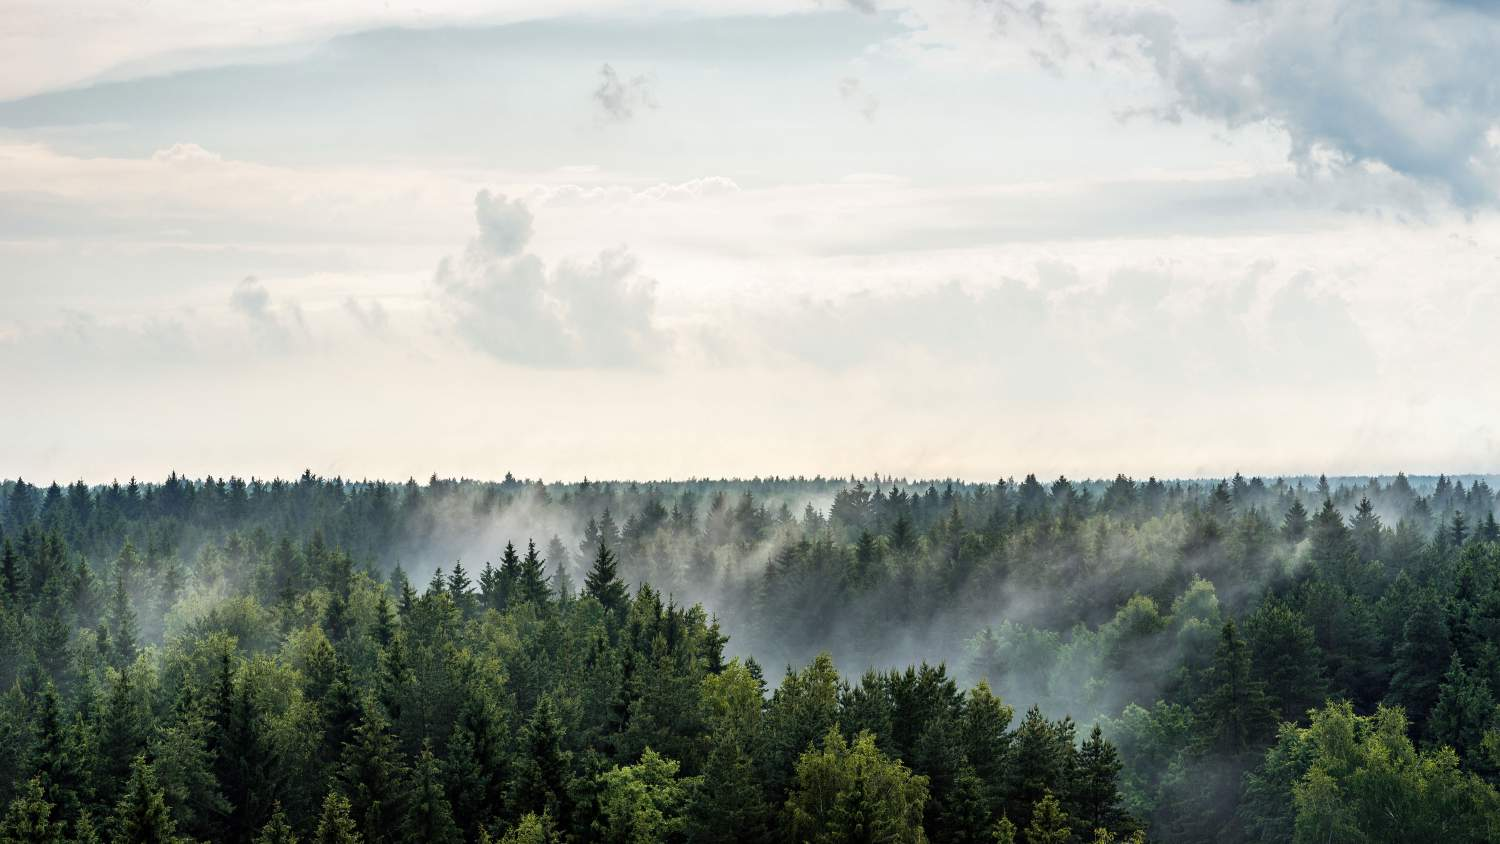 Evaporation in a forest